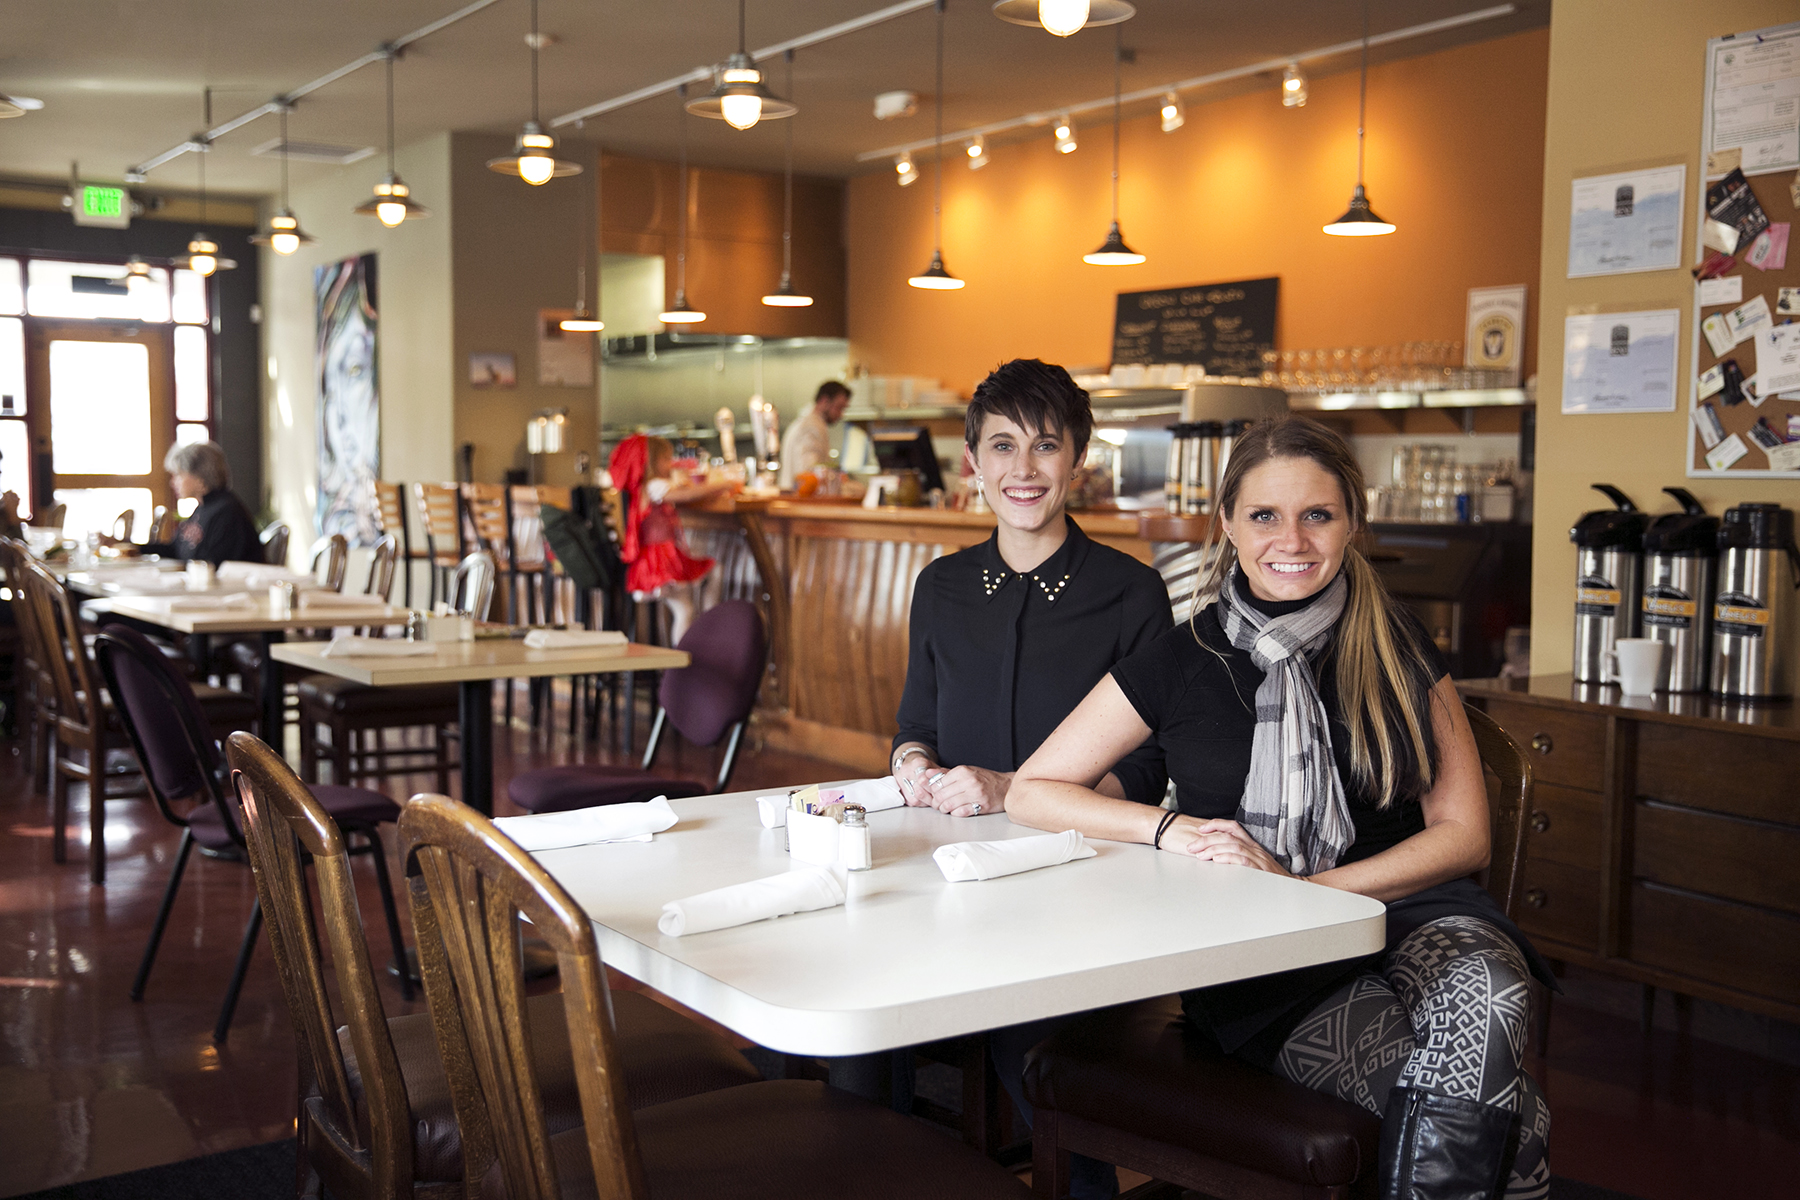 (L to R) Grace Greenspan, Tawna Fayette of Oxbow Cafe